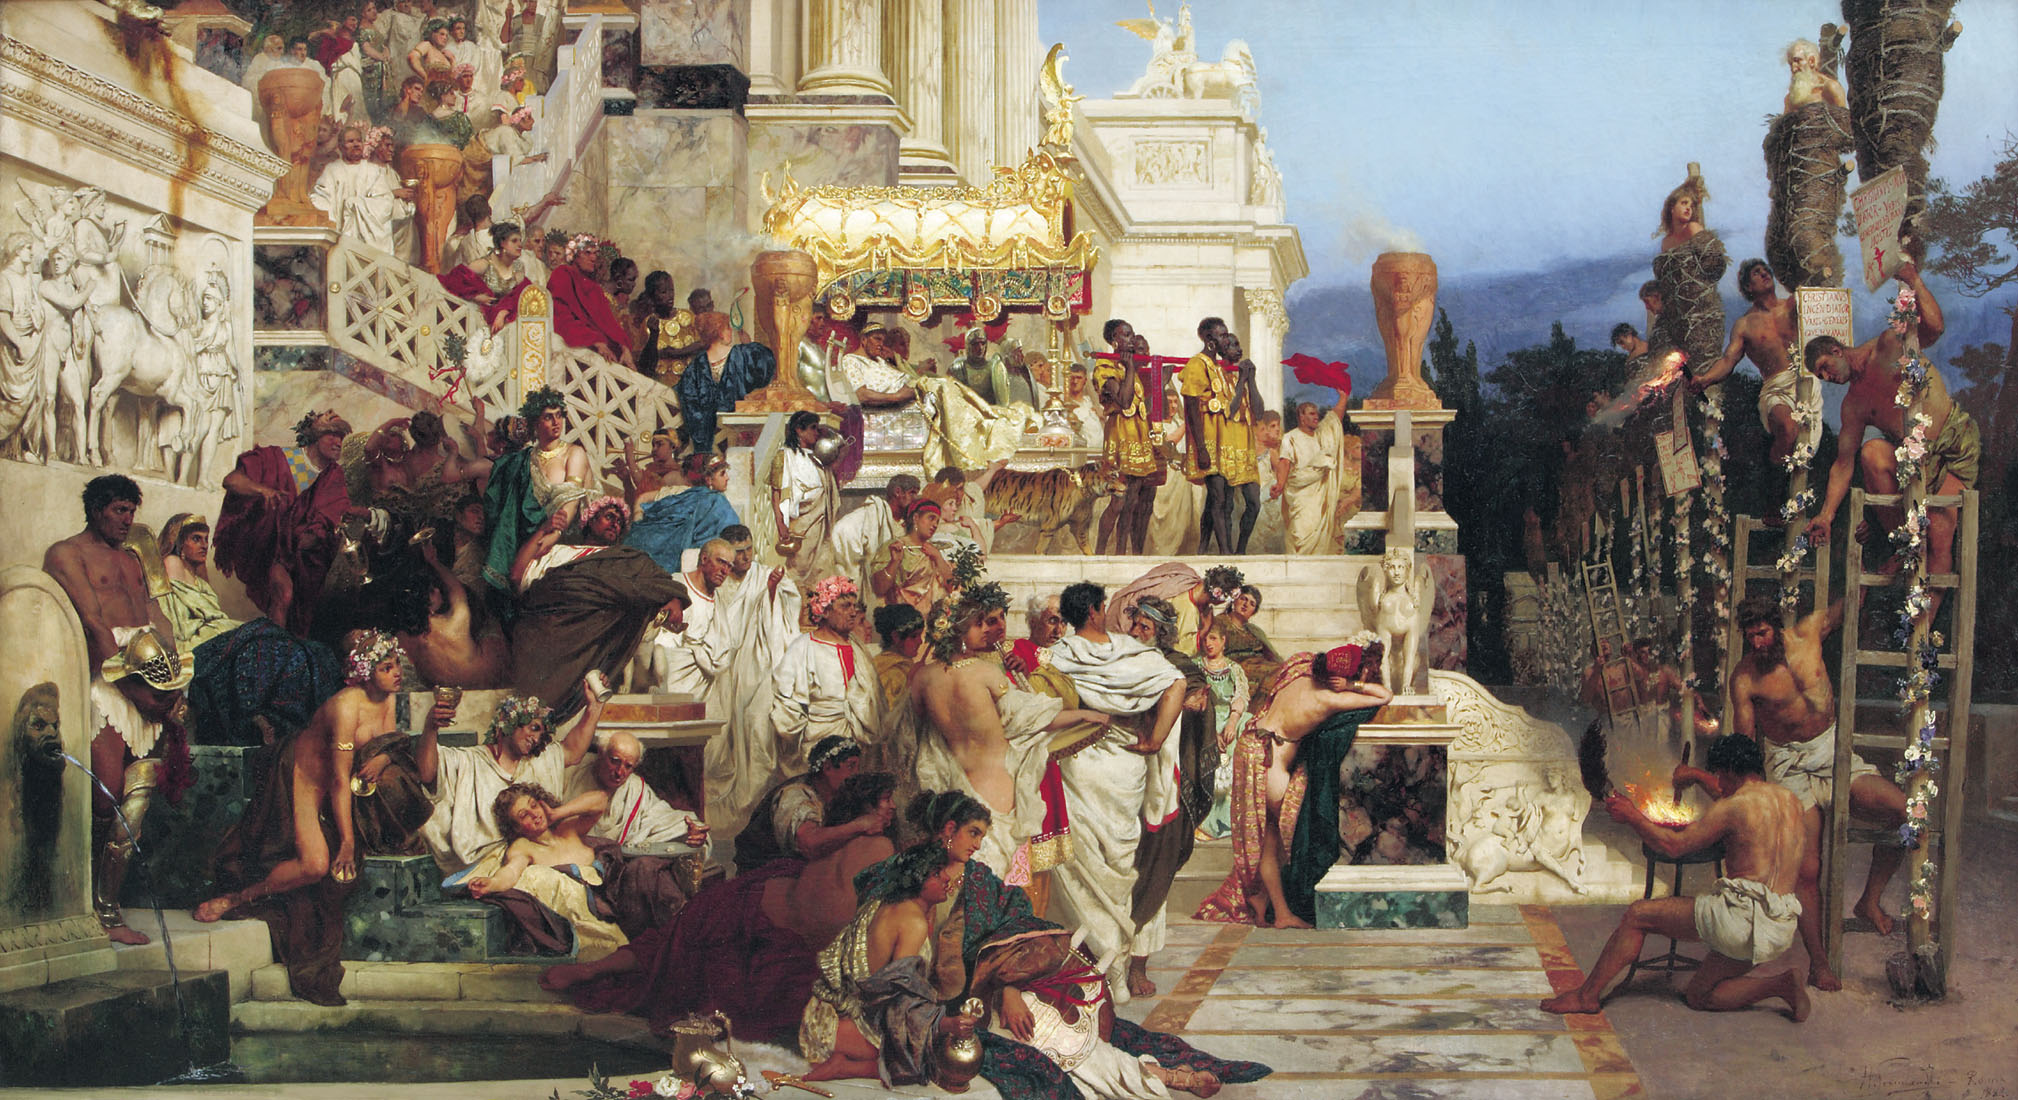 a comparison of platos views in ancient greece and conservative christians today